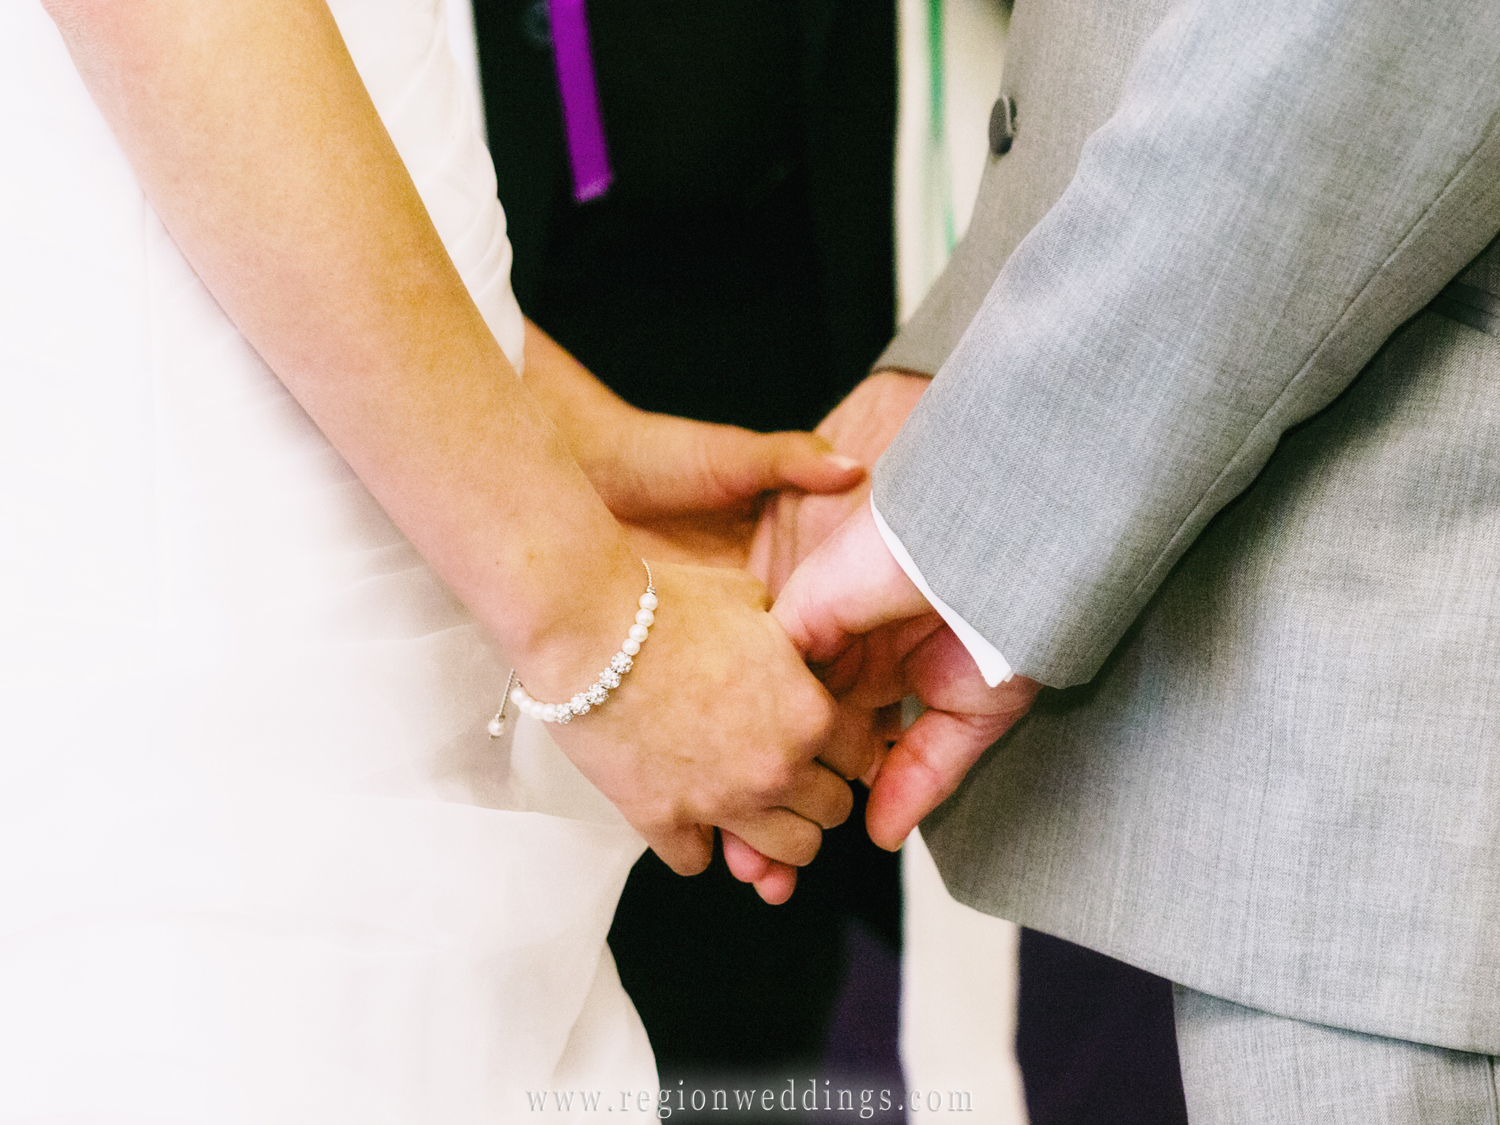 A bride and groom hold hands during their indoor wedding ceremony at The Allure.